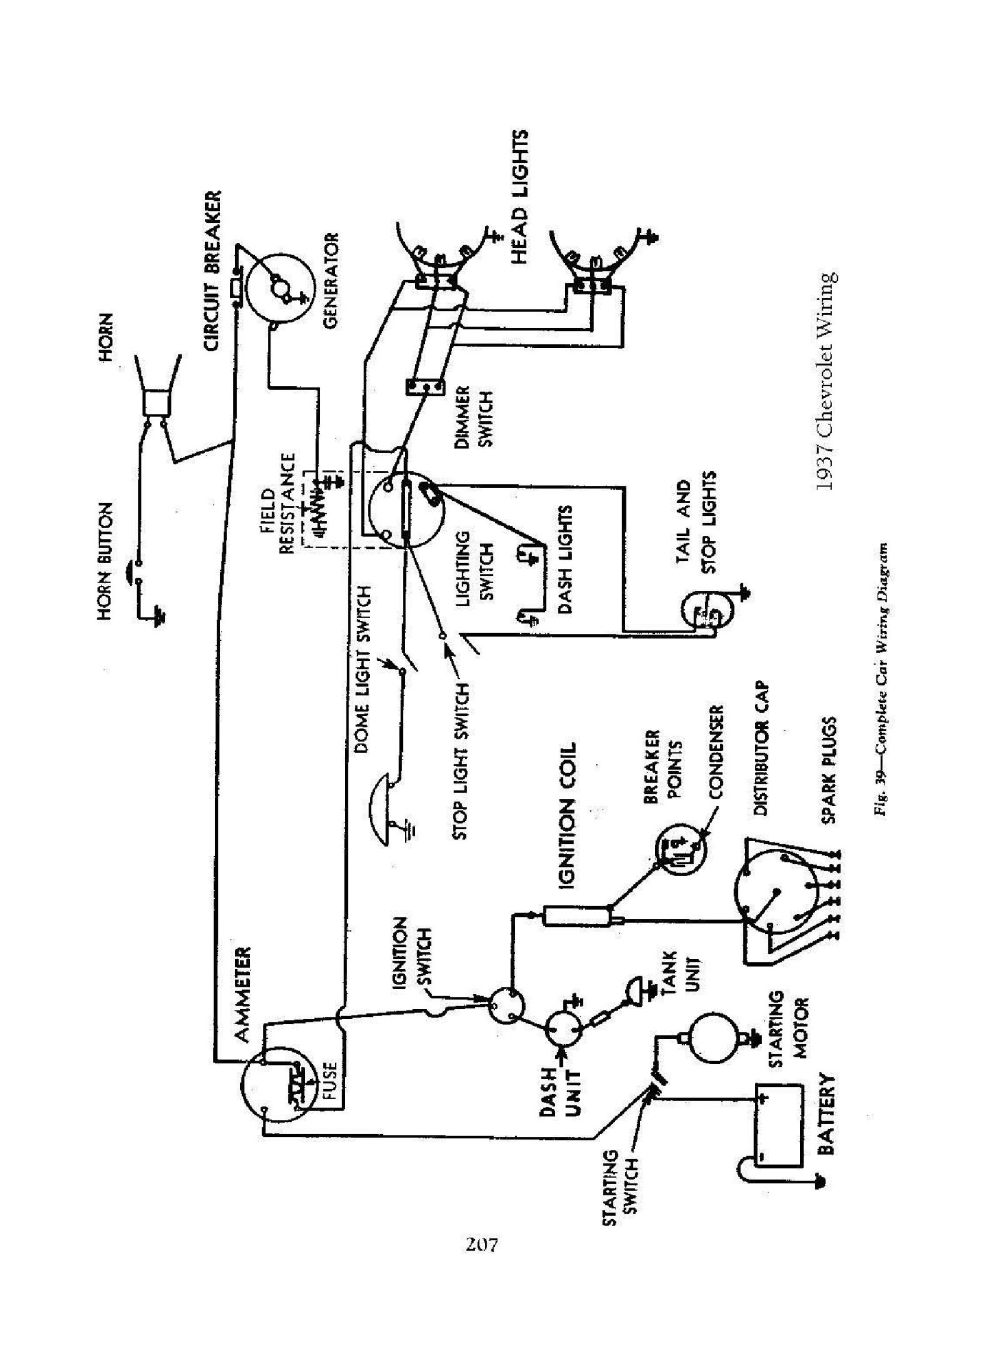 medium resolution of chevy generator wiring wiring diagram usedchevrolet generator wiring diagram wiring diagram centre 1957 chevy generator wiring